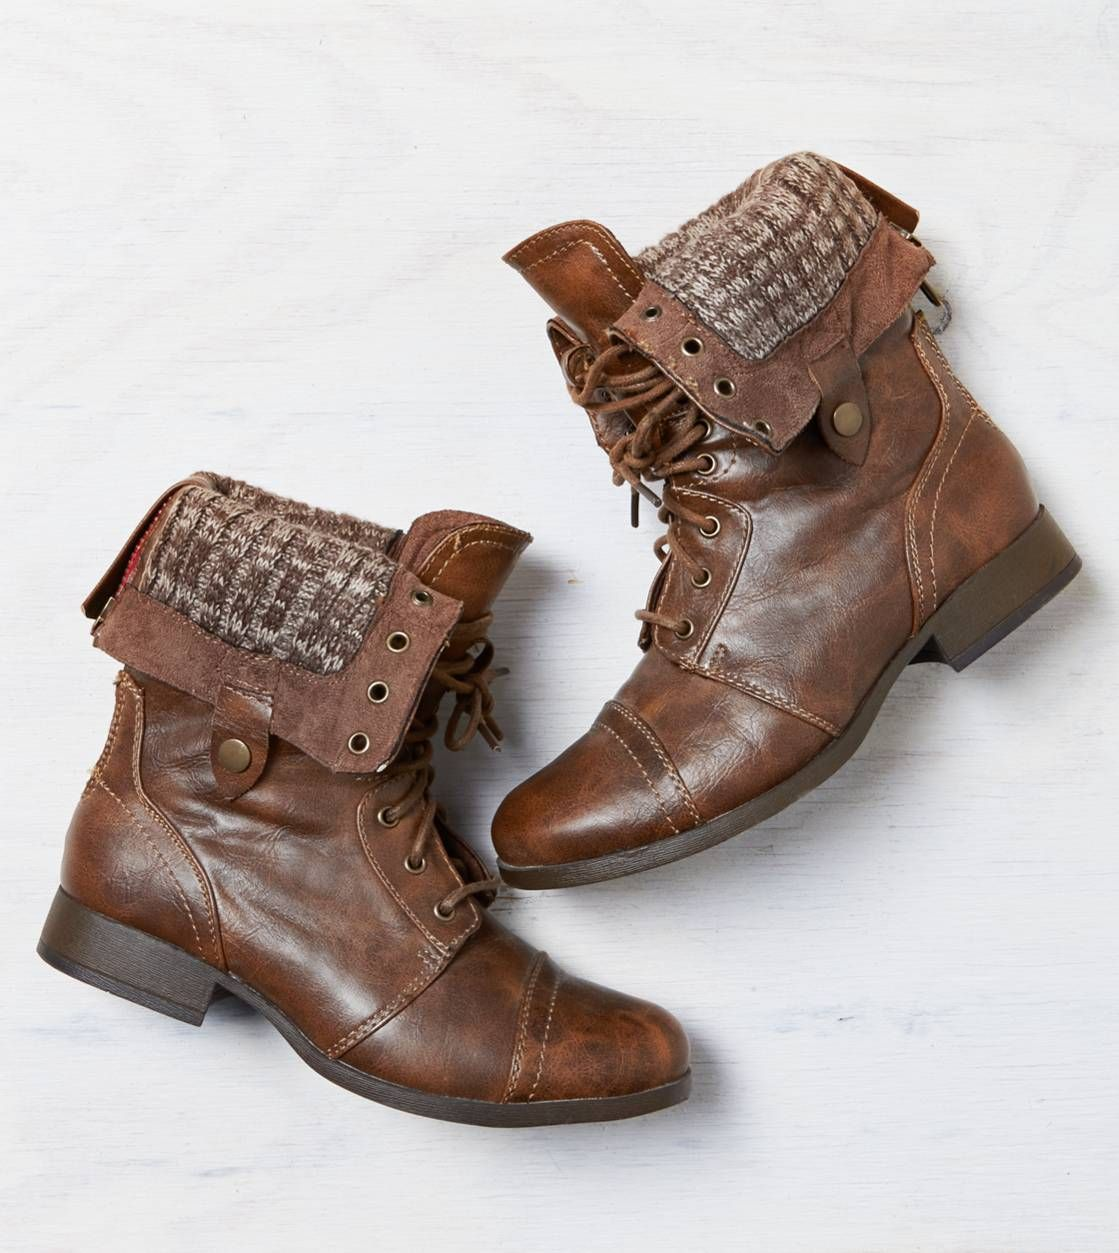 AEO Lace-Up Boot  I NEED THESE SOOOO BAD!! I've been looking EVERYWHERE for a pair like these for MONTHS and I finally found the ones I want, and want them I do!